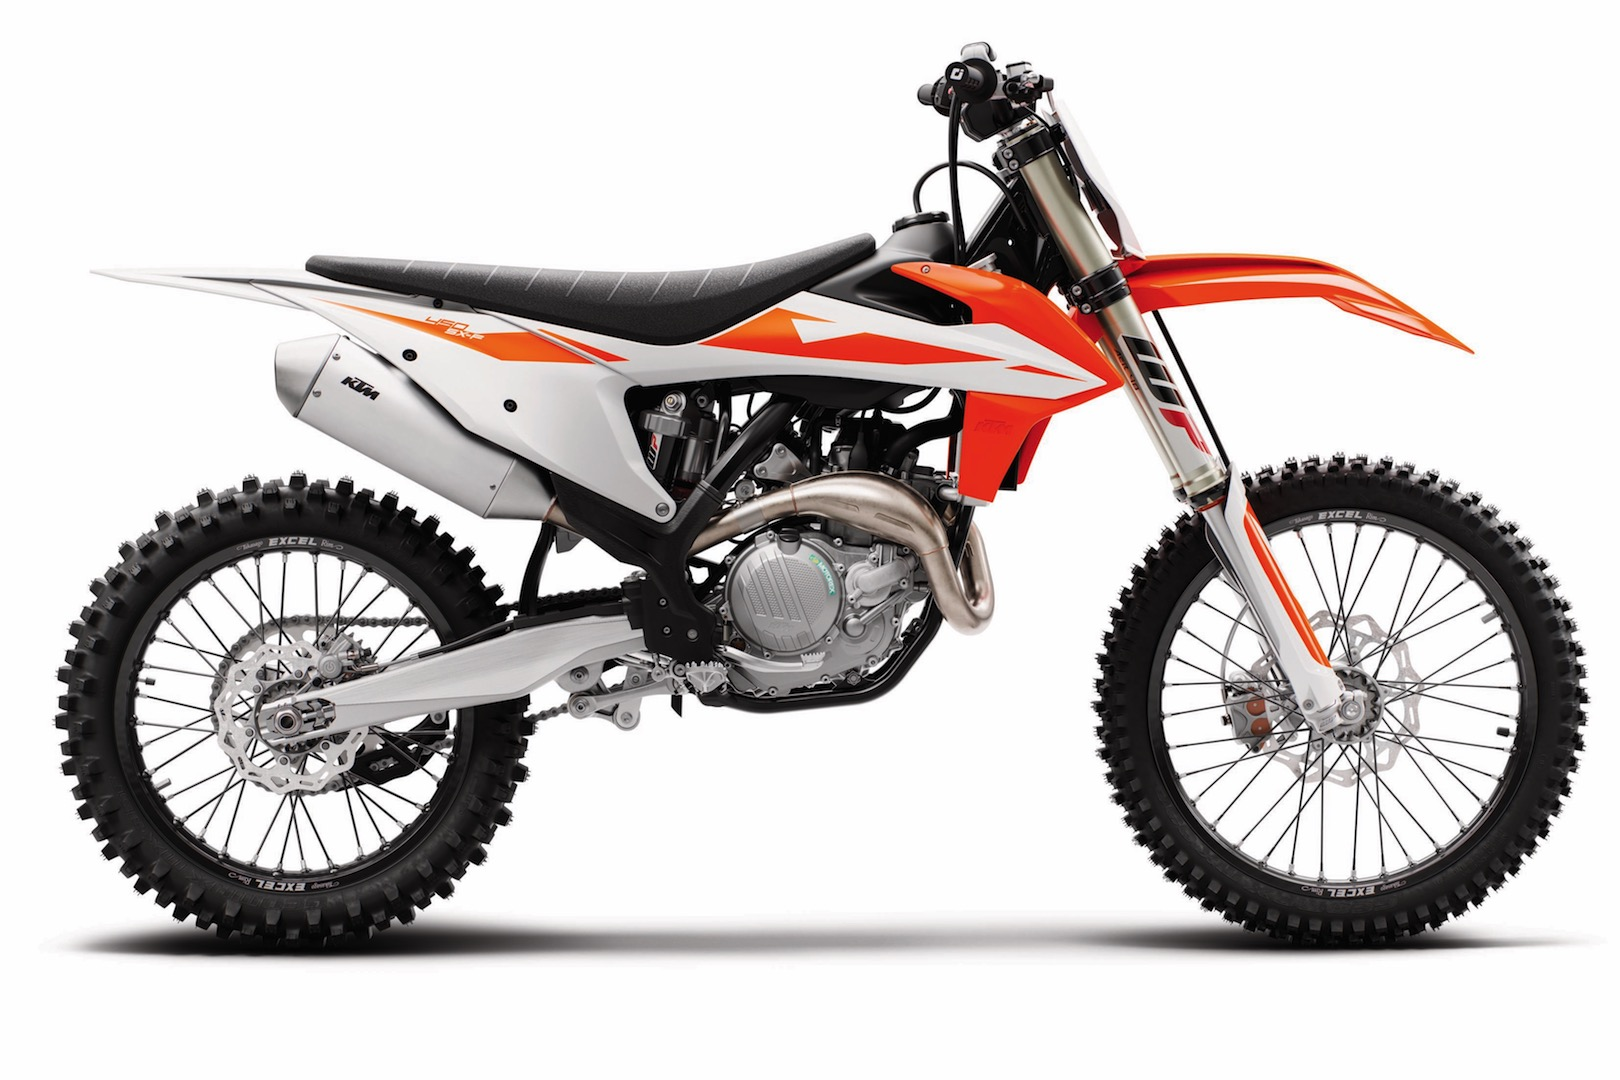 Check out the three upgraded KTM SX-F models from the 2019 lineup